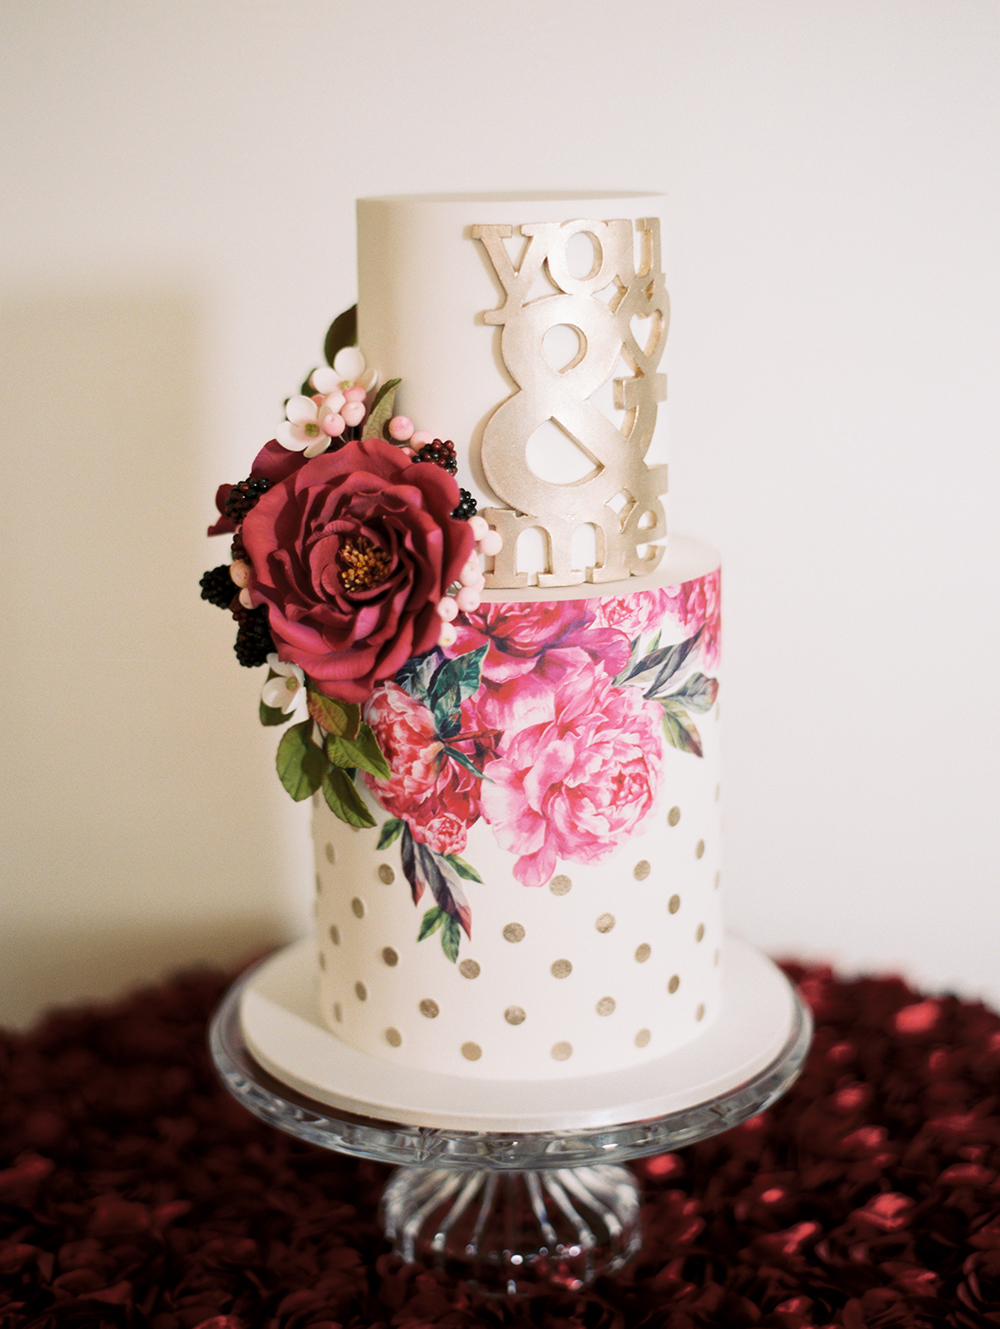 Valentines Day wedding cake with polka dots and flowers - photo by Erin Stubblefield http://ruffledblog.com/chic-city-valentines-day-wedding-inspiration